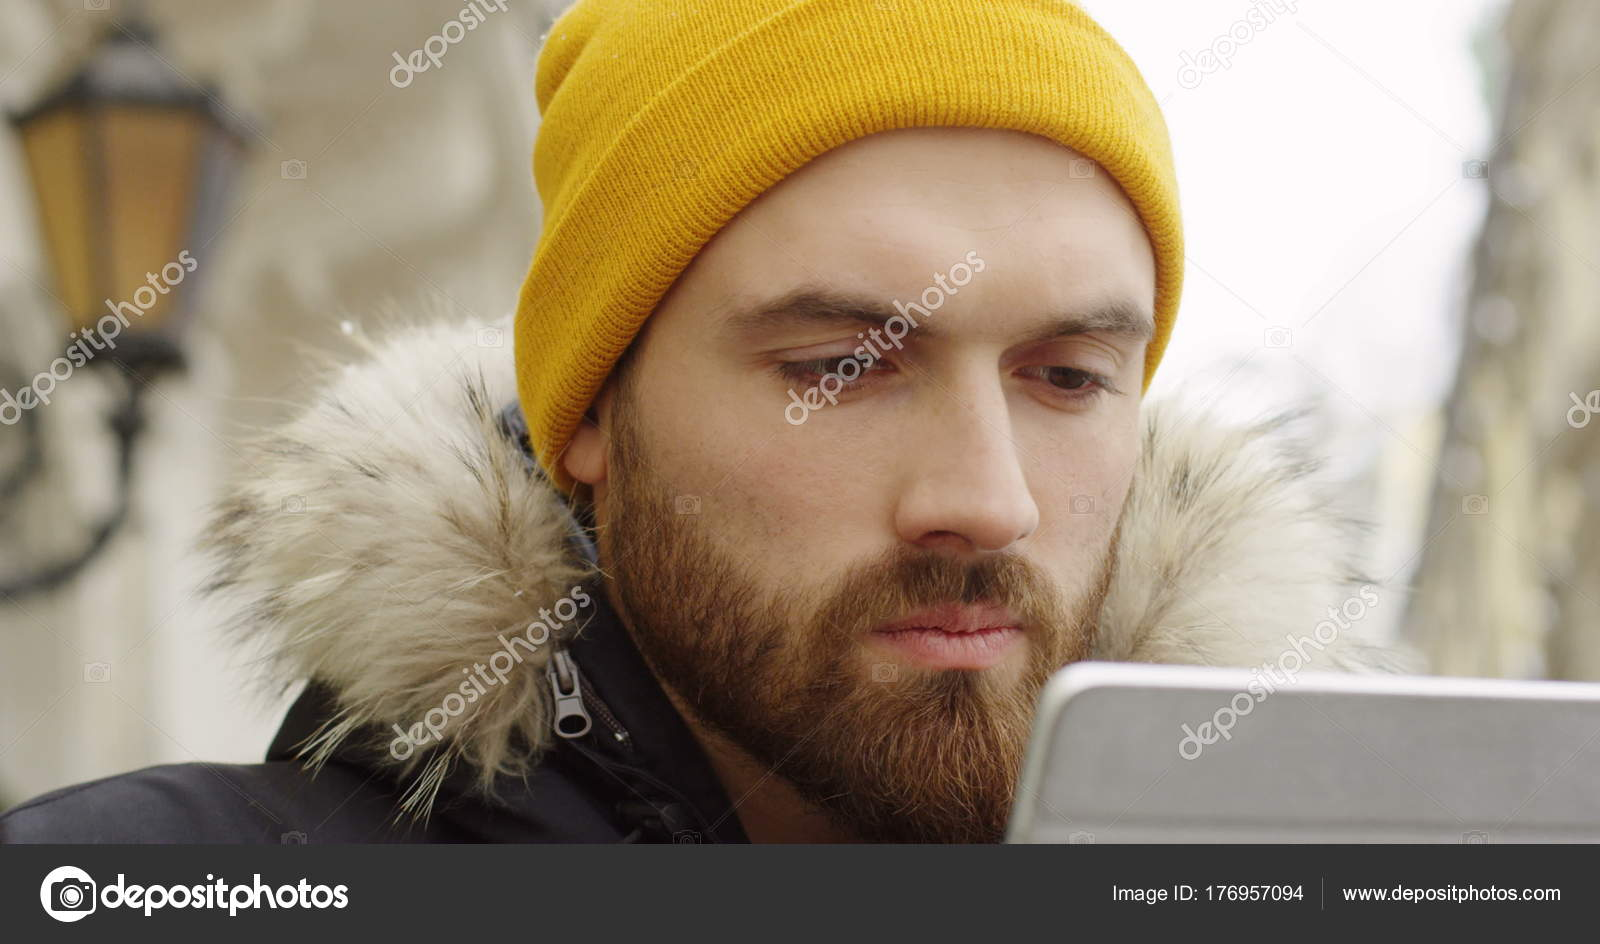 252433a1499 Young Caucasian Man Beard Yellow Hat Looking Tablet Device Screen — Stock  Photo